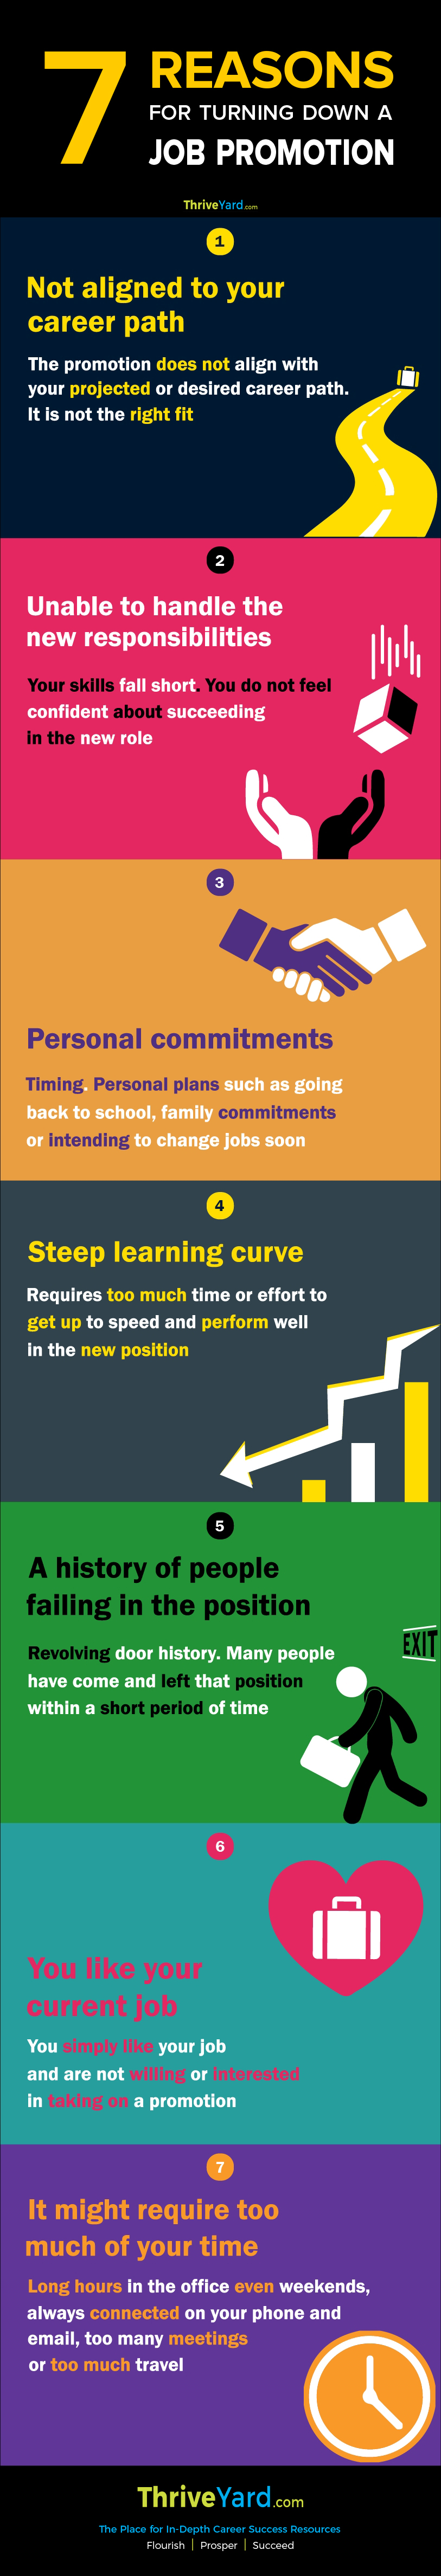 7 Reasons for Turning Down a Job Promotion - Infographic